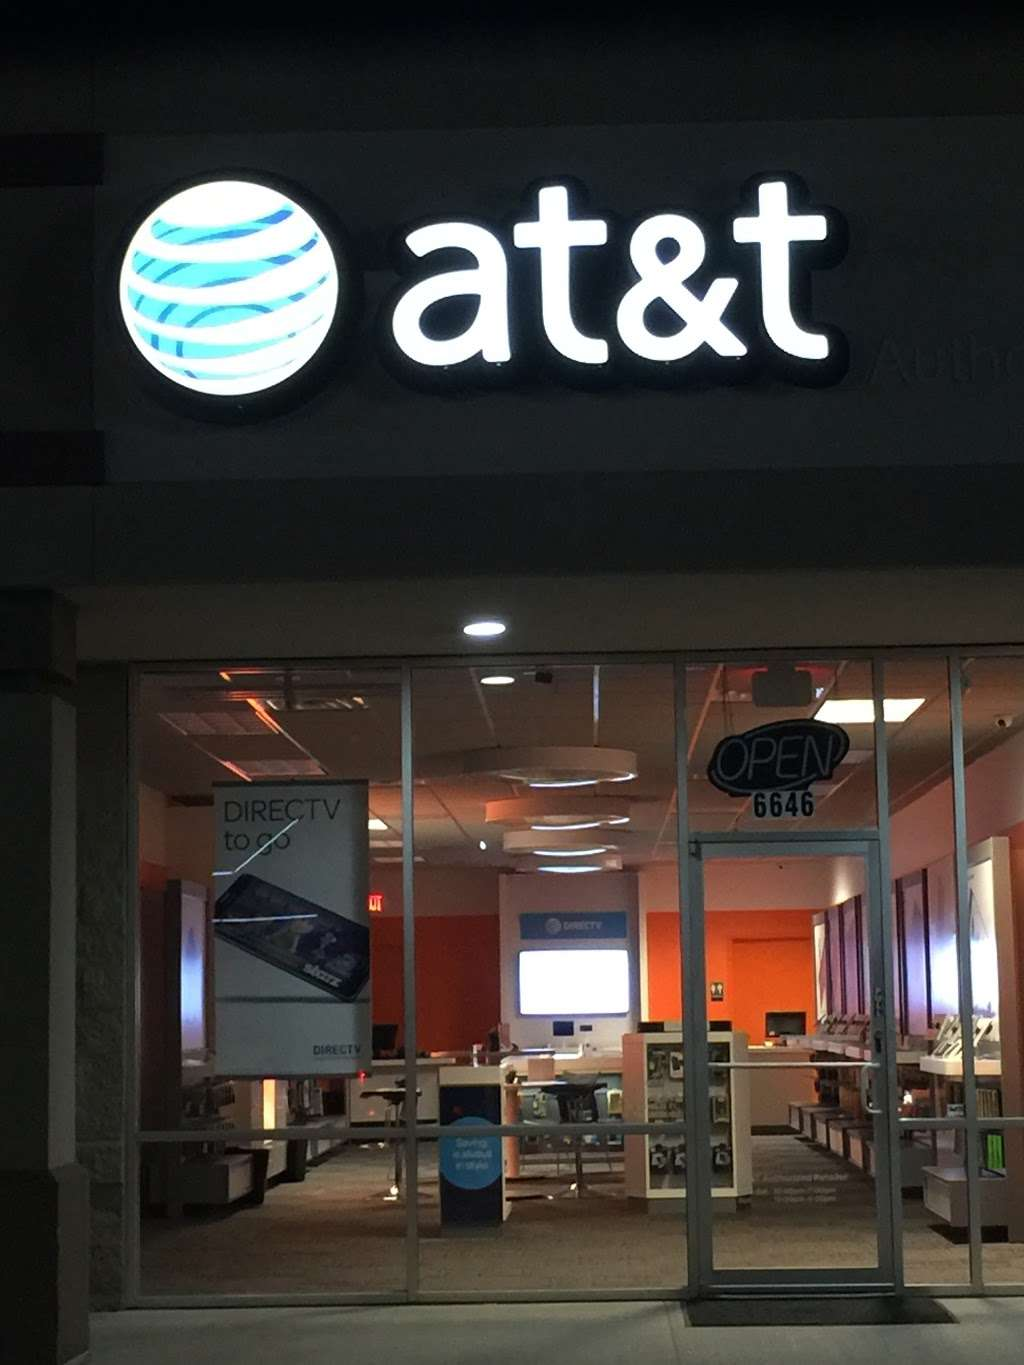 AT&T Store - electronics store  | Photo 9 of 10 | Address: 6646 Garth Rd, Baytown, TX 77521, USA | Phone: (281) 421-1900